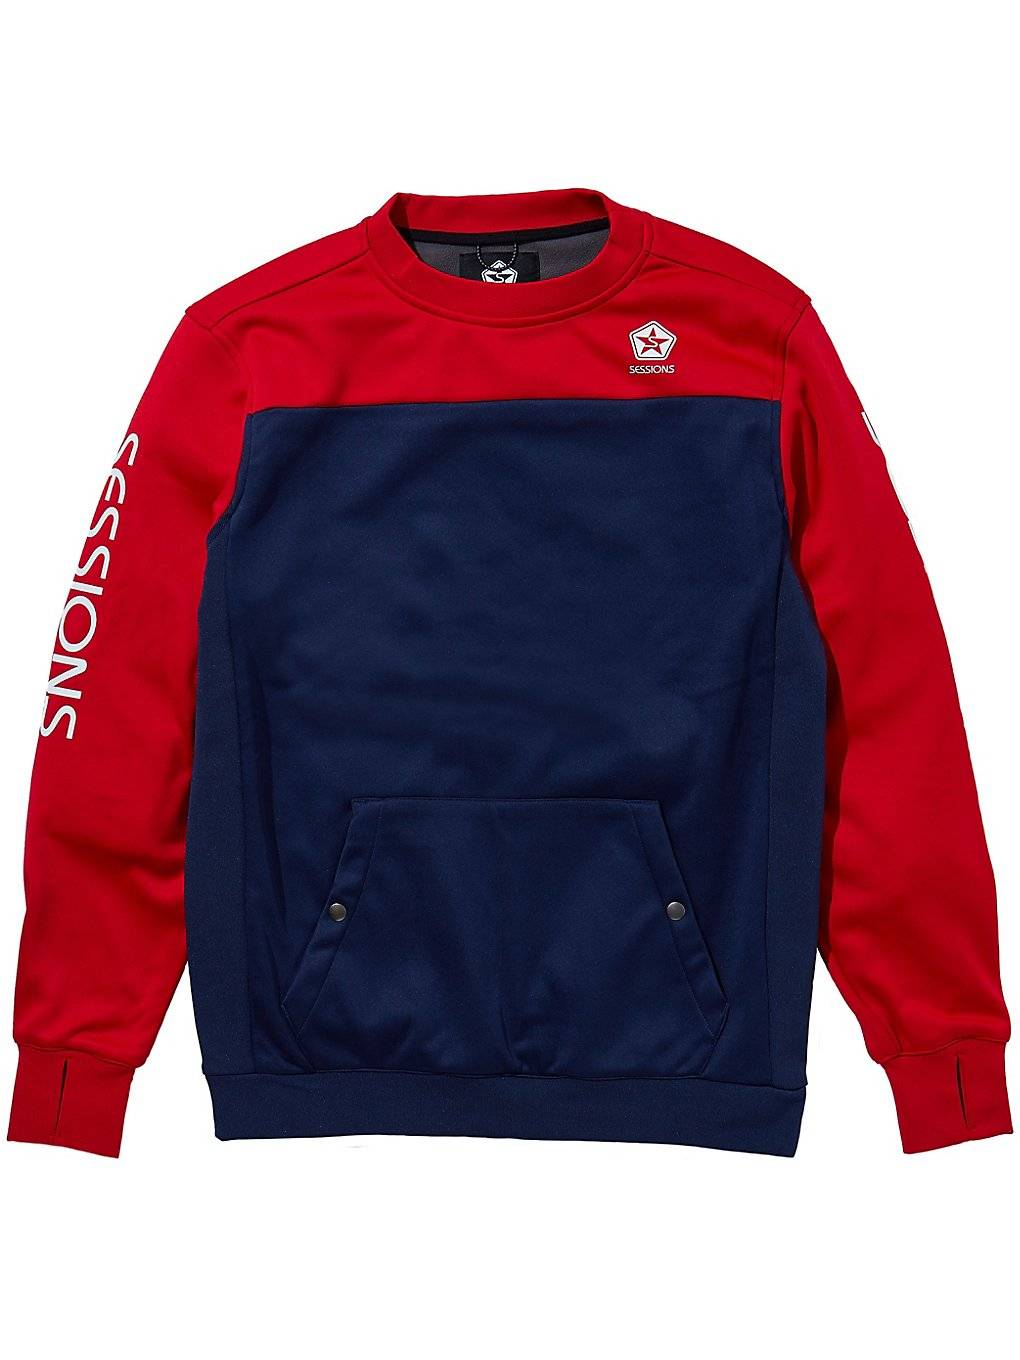 Sessions Roster Crew Sweater punainen  - deep red